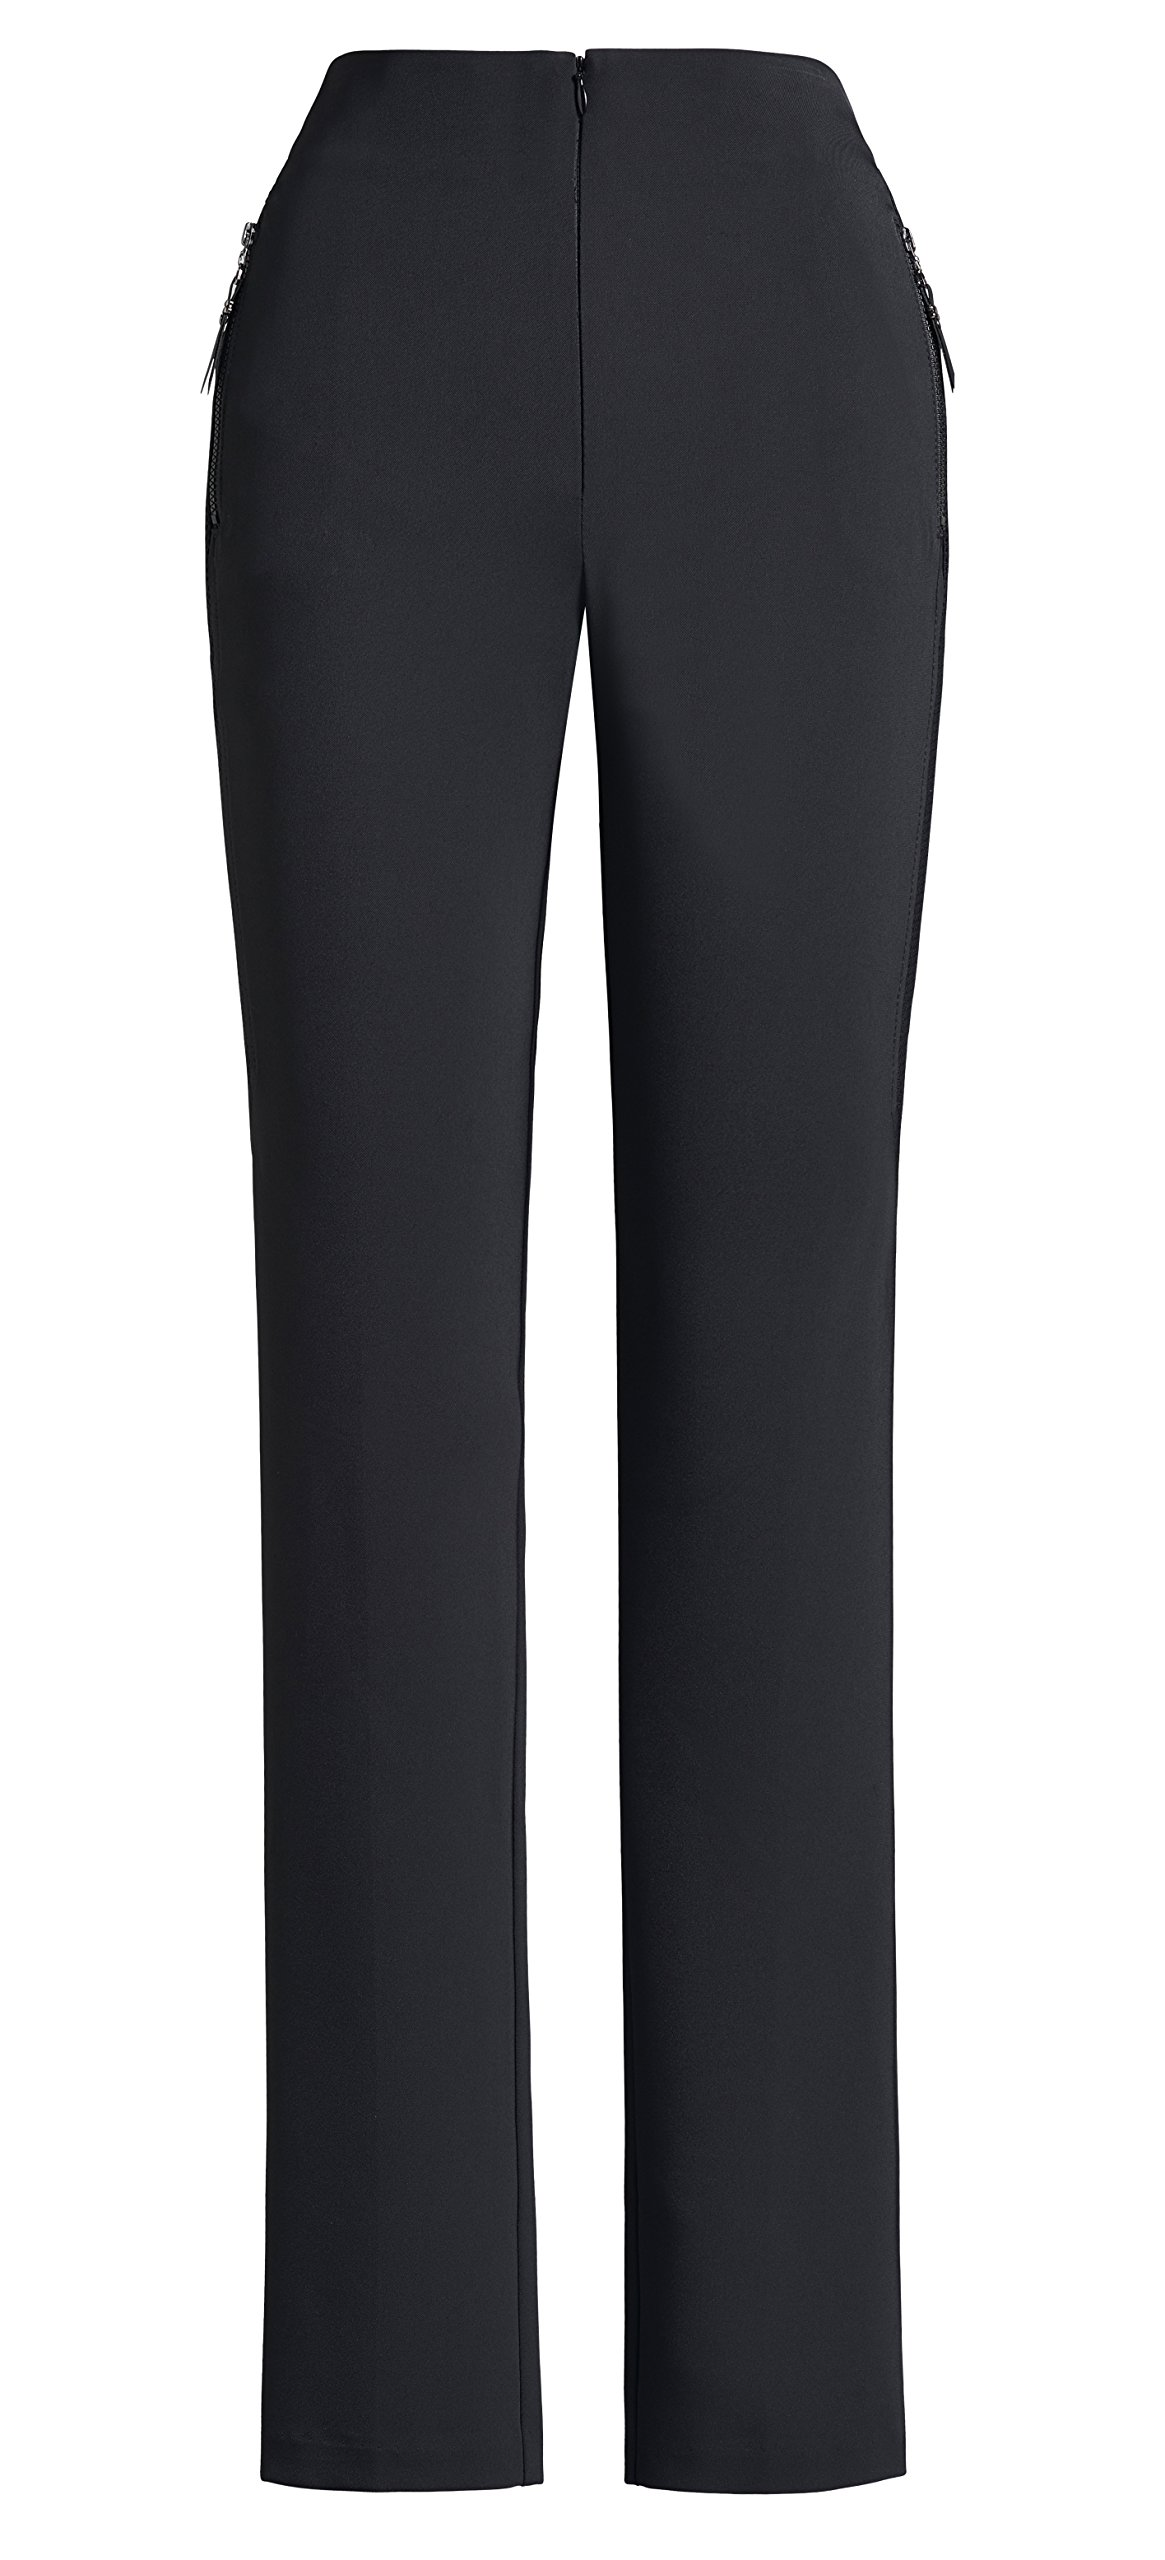 Joseph Ribkoff Black Fitted Pants + Functional Mini Pockets Style 151488 - Size 12